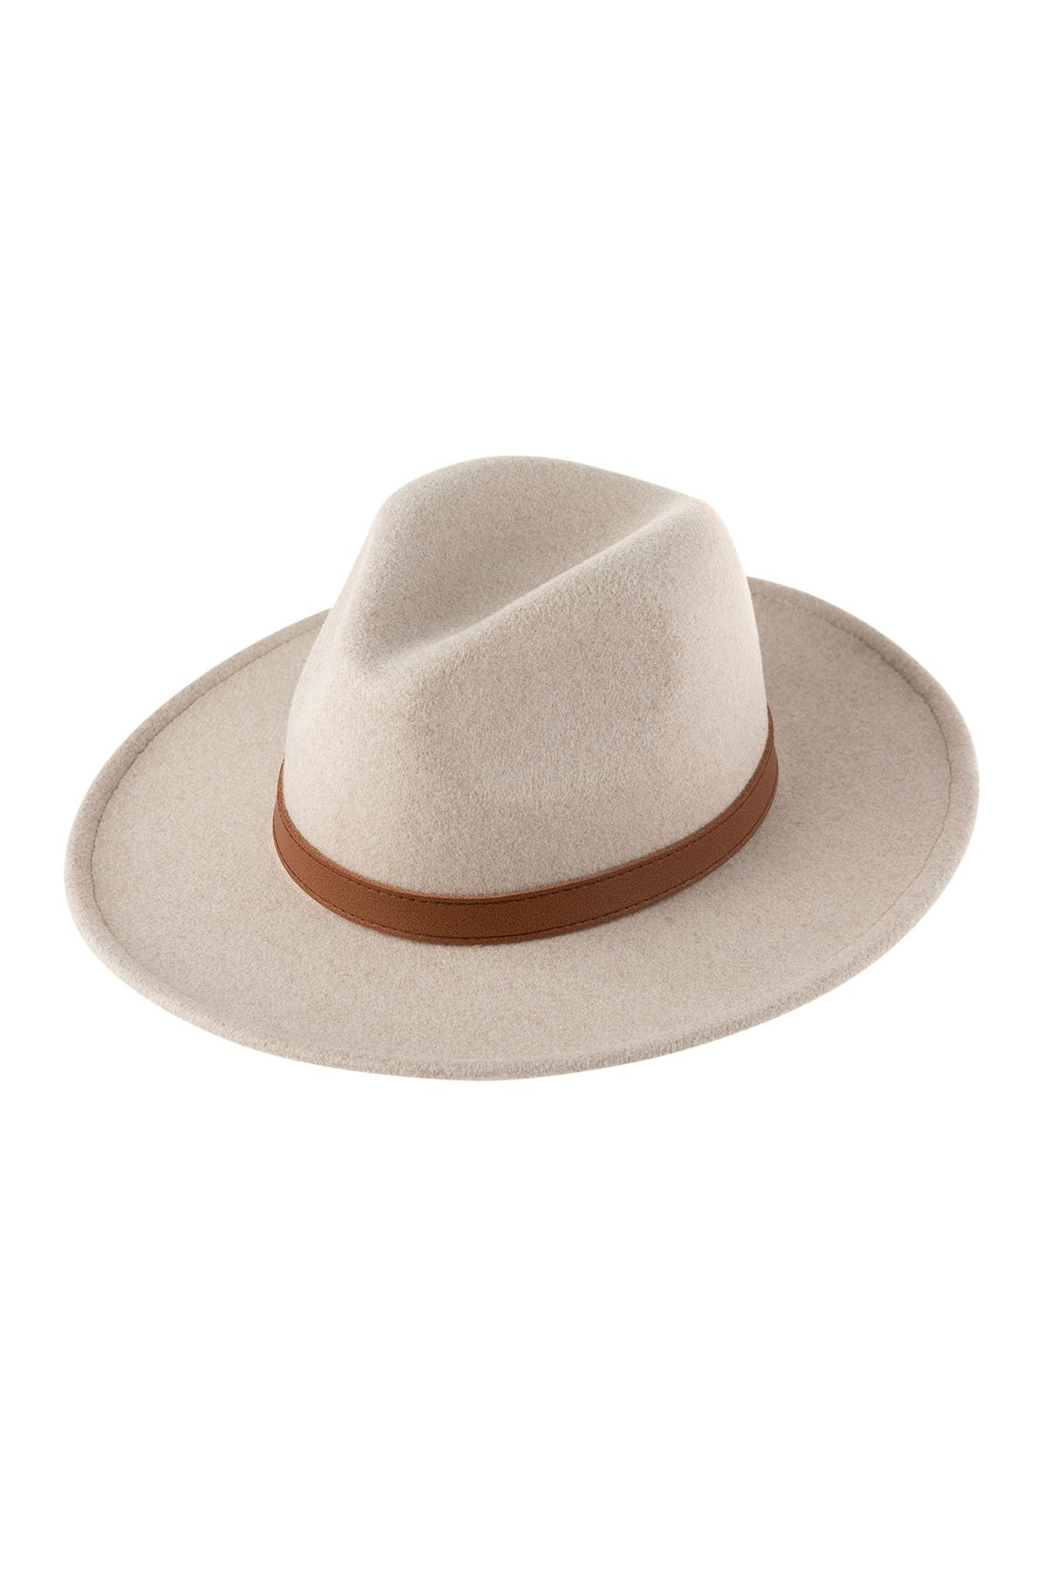 Riah Fashion Neutral Colors Fashion Hat With Leather Belt Accent - Front Full Image